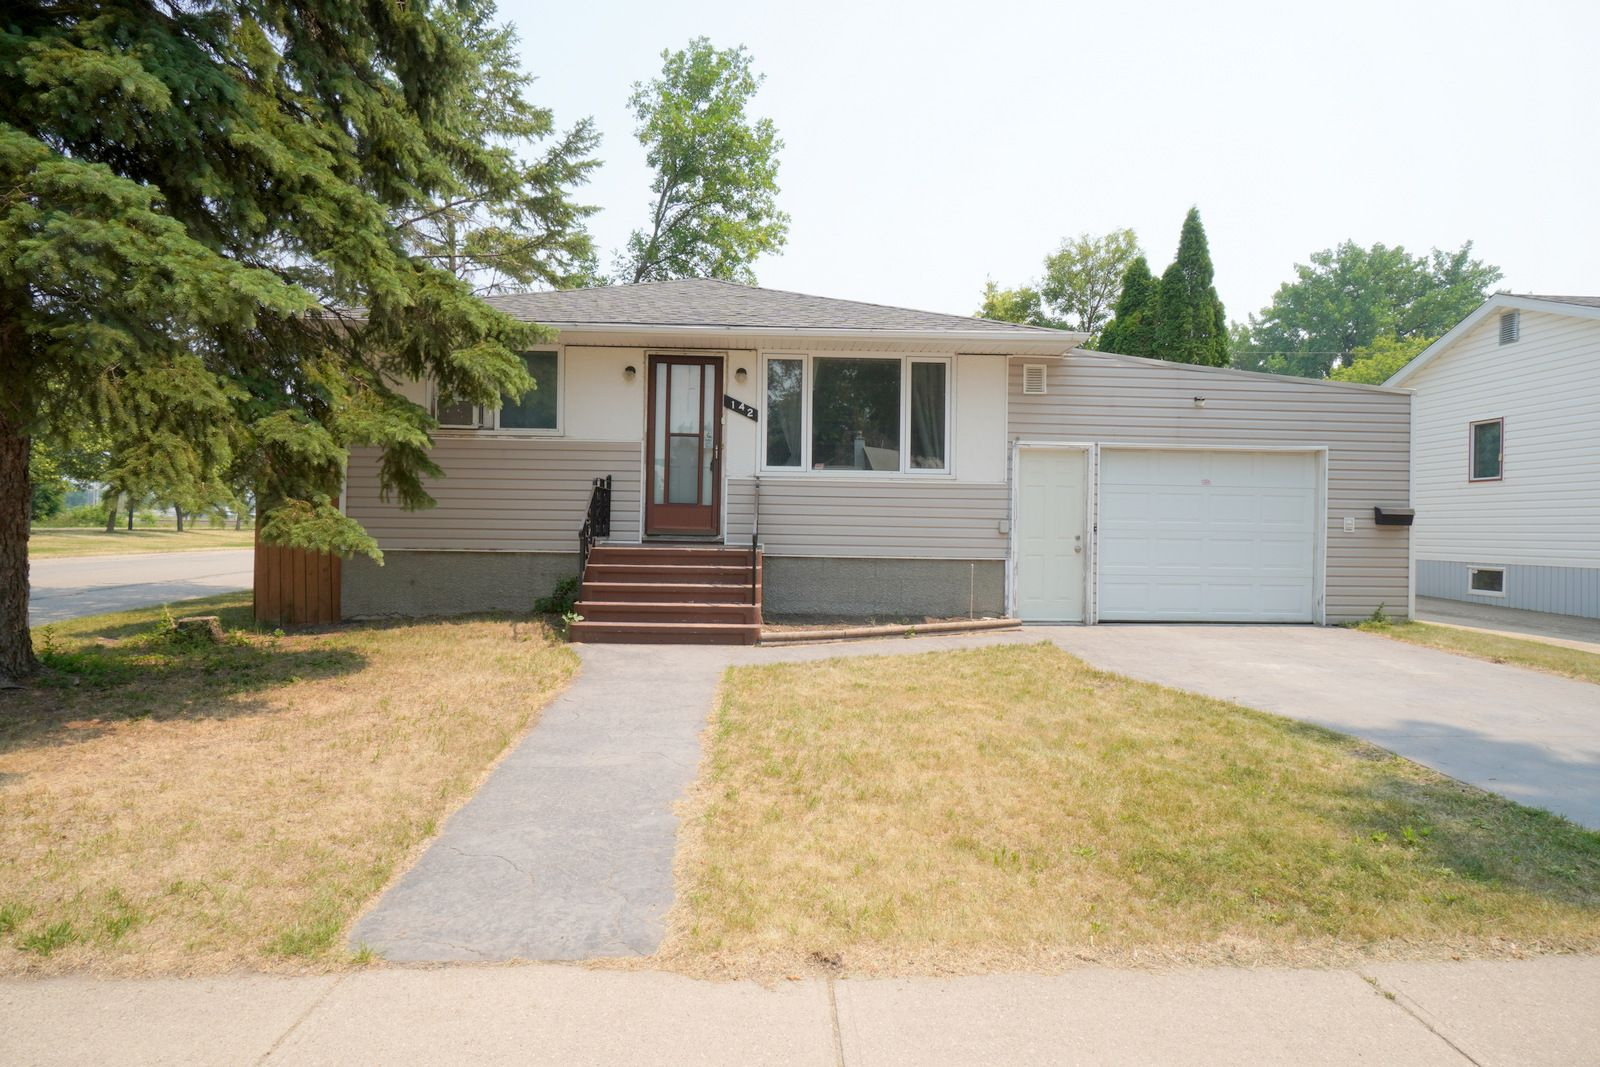 Main Photo: 142 7th ST NW in Portage la Prairie: House for sale : MLS®# 202117275